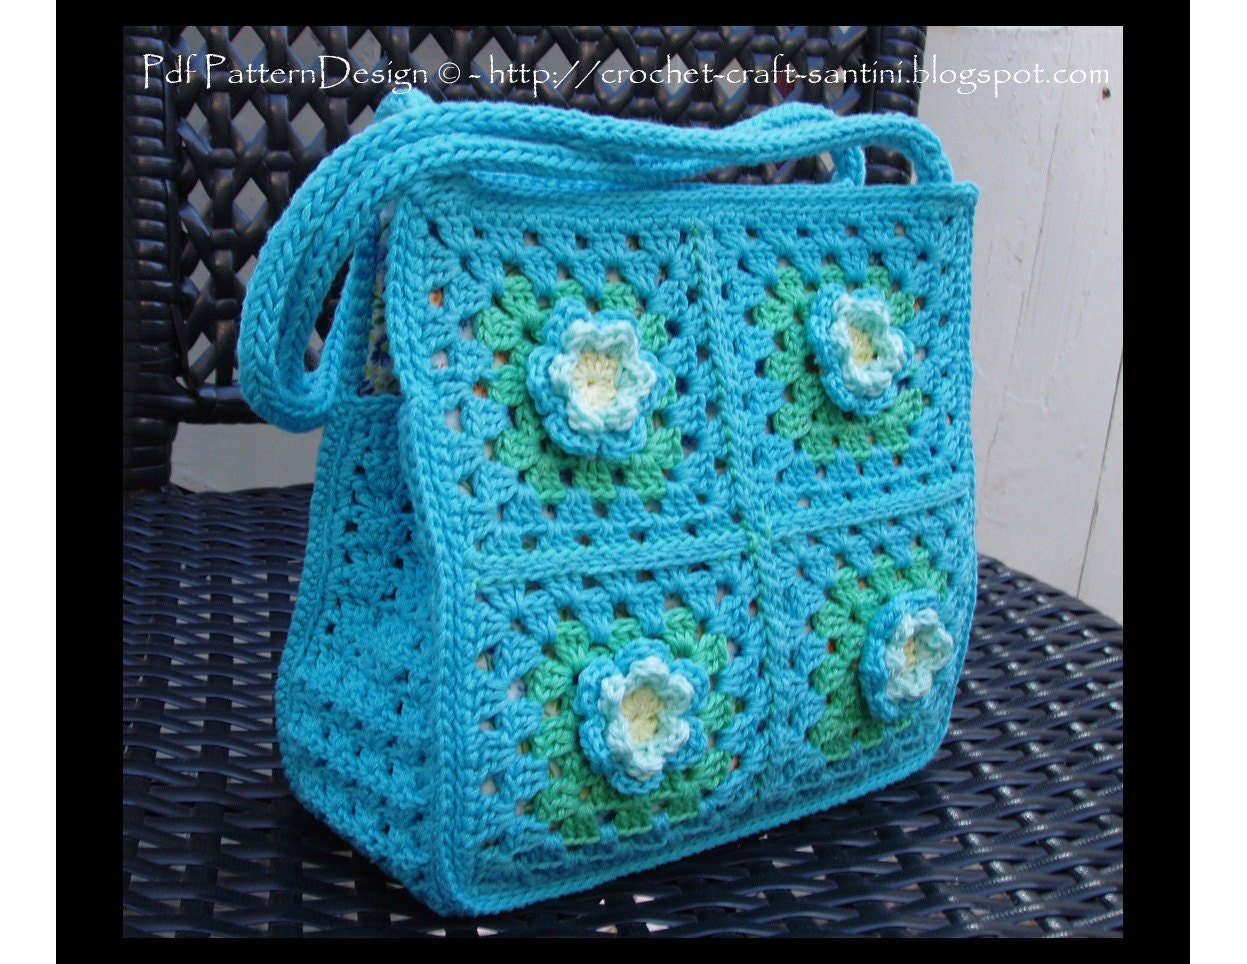 Crochet Granny Square Purse Pattern : Granny Square Bag-Purse Crochet Pattern with by PdfPatternDesign